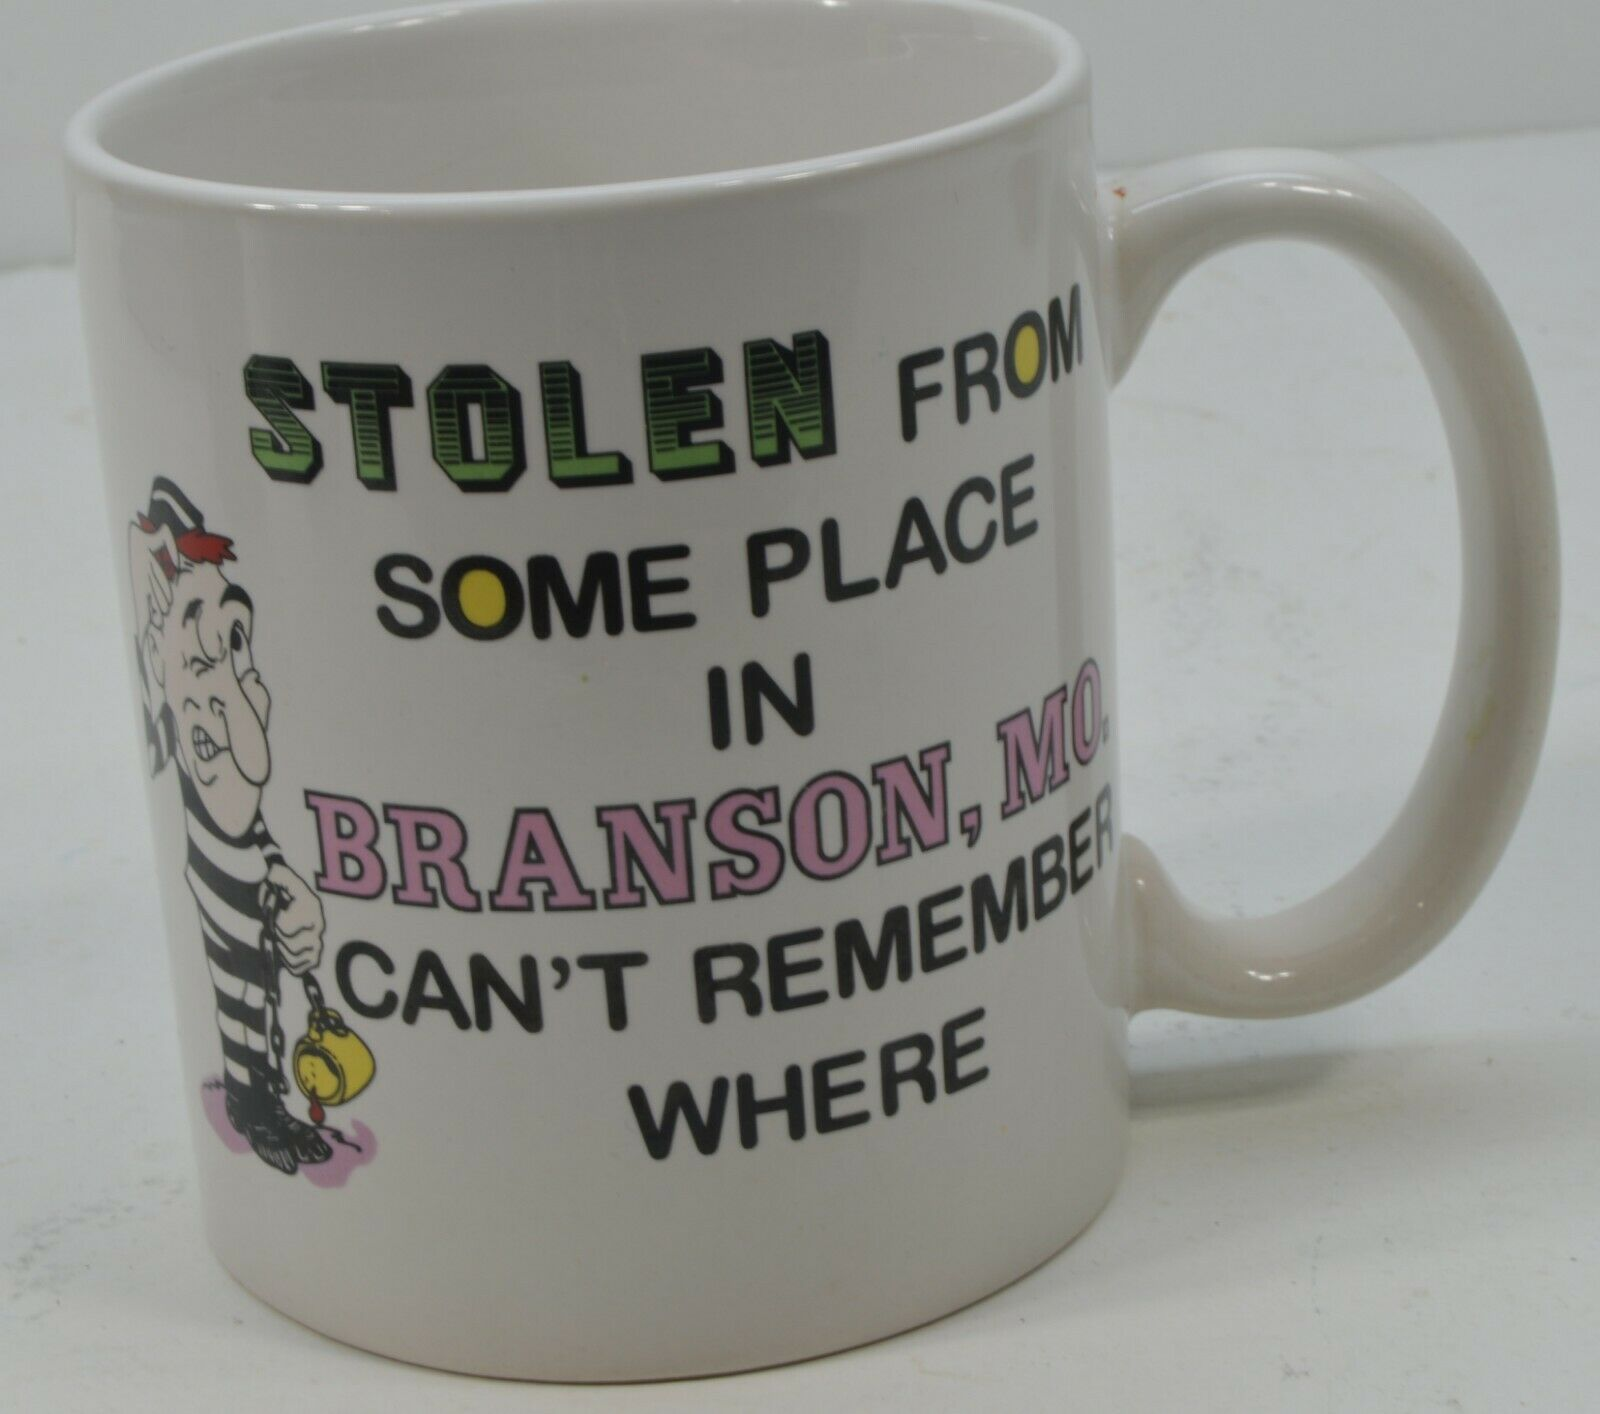 Stolen from Some Place in Branson, MO Can't Remember Where Prisoner Mug